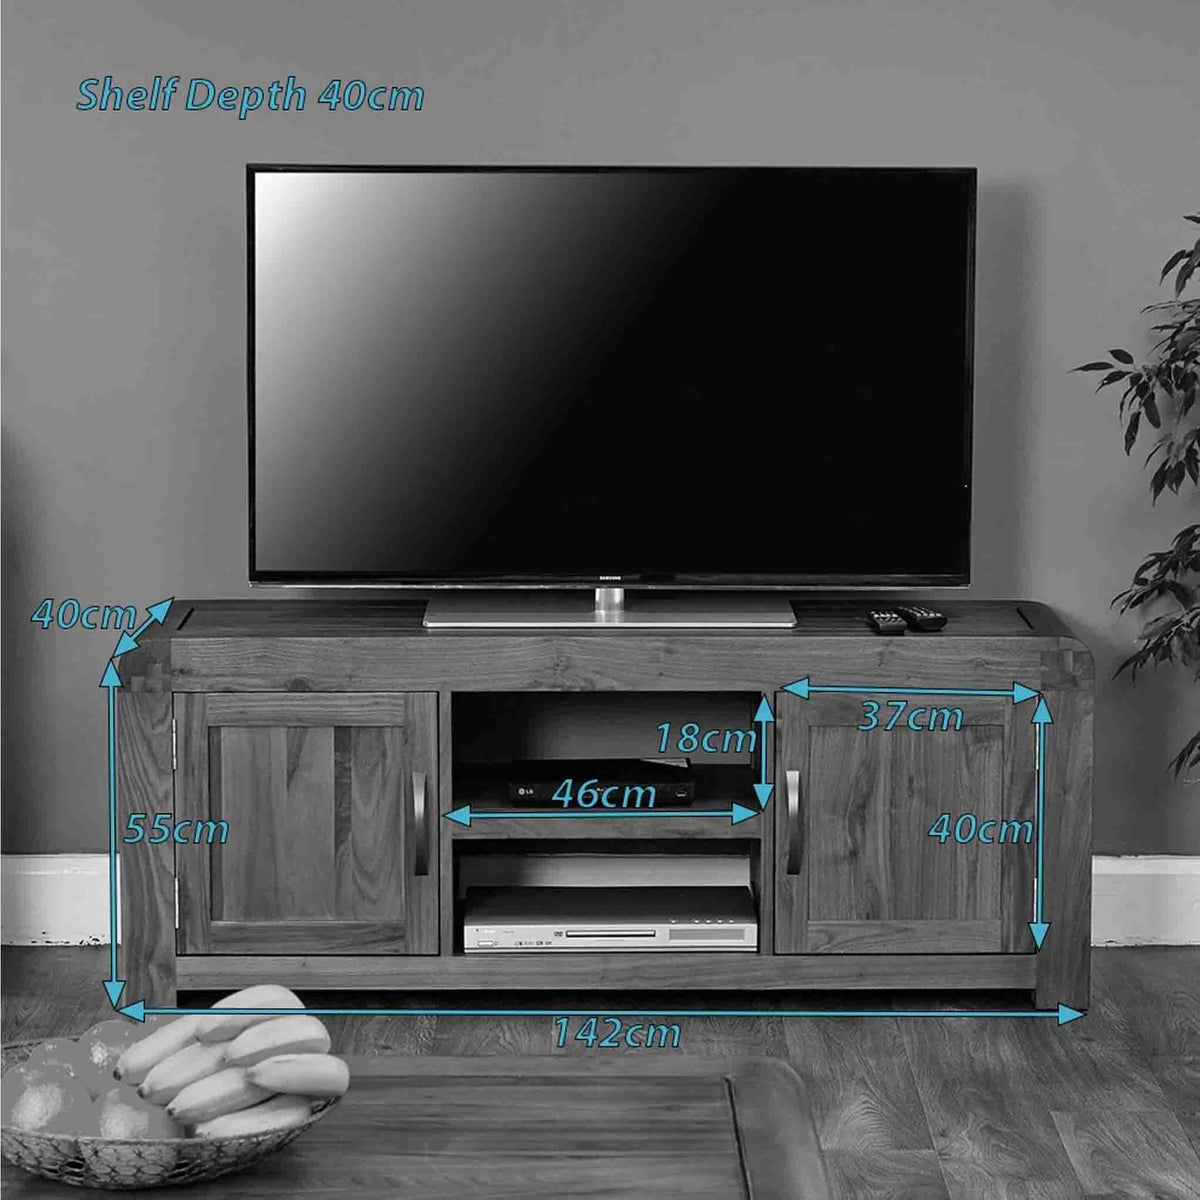 Dimensions for The Salem Walnut Large Wooden TV Stand Storage Cabinet